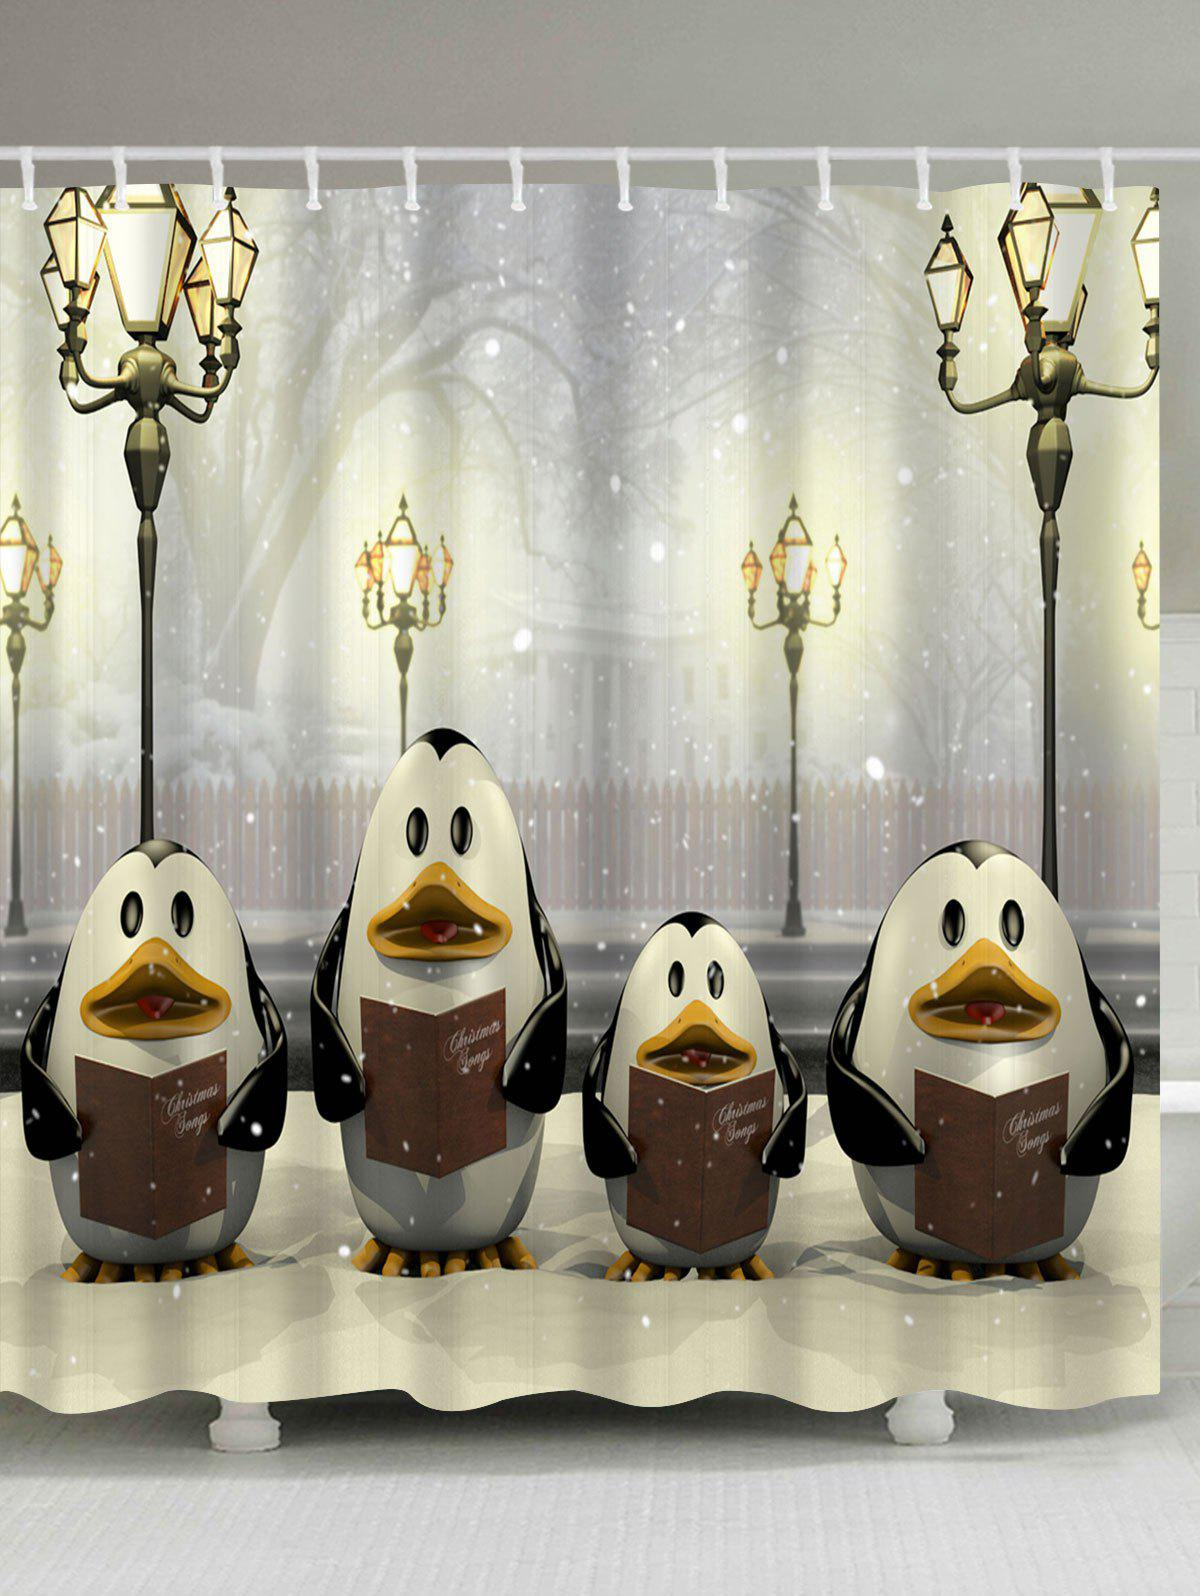 Penguin Christmas Street Lamp Waterproof Bath Curtain - LIGHT YELLOW W71 INCH * L79 INCH